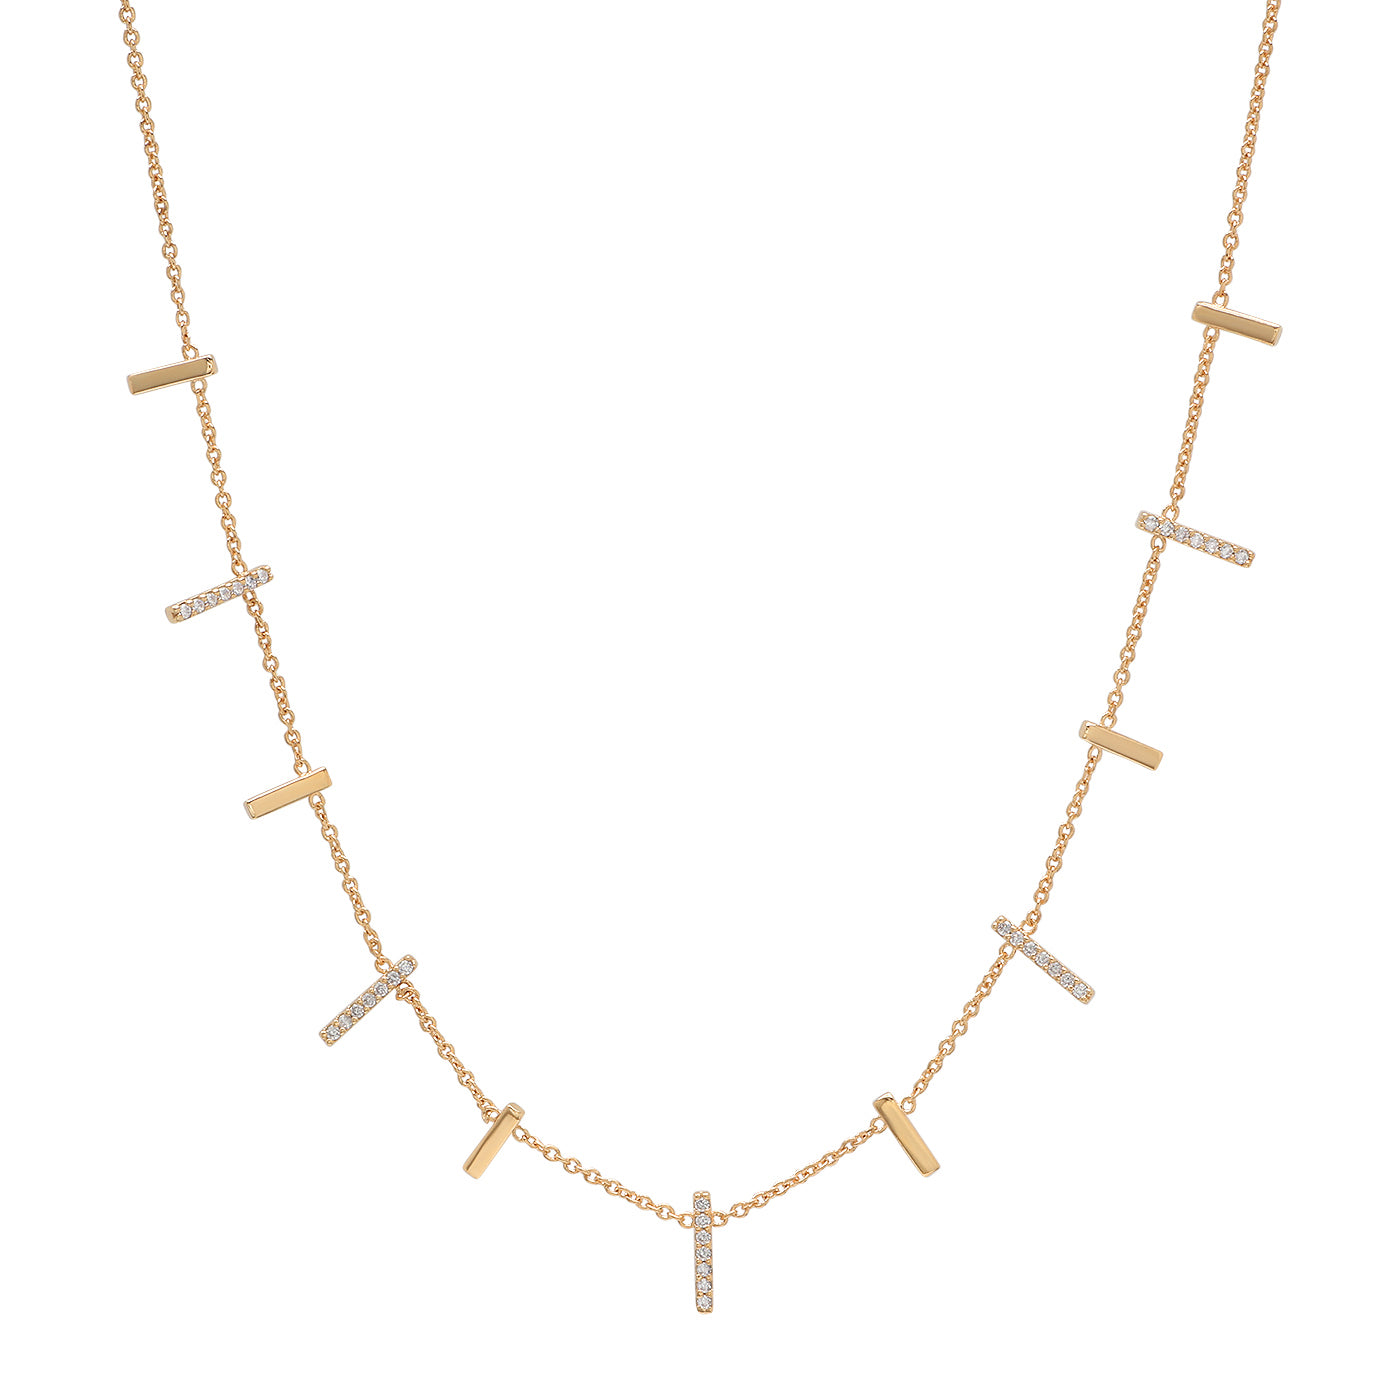 Gold and Pave CZ Stick Necklace